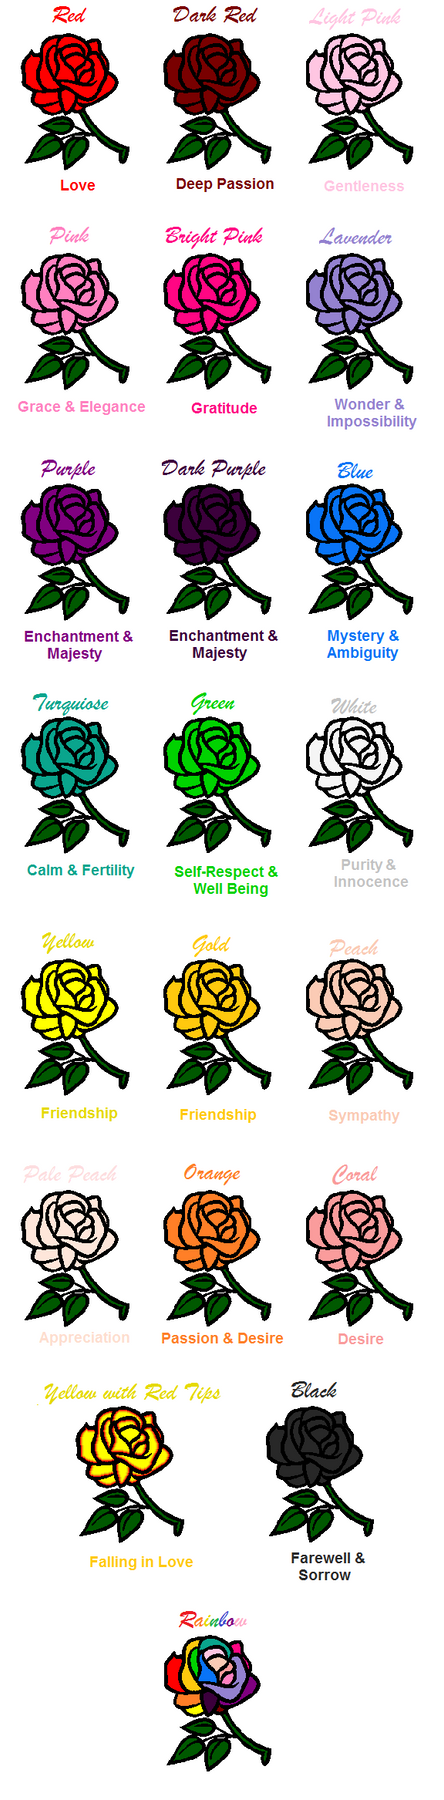 Rose color meanings by arianatheechidna on deviantart rose color meanings by arianatheechidna biocorpaavc Gallery